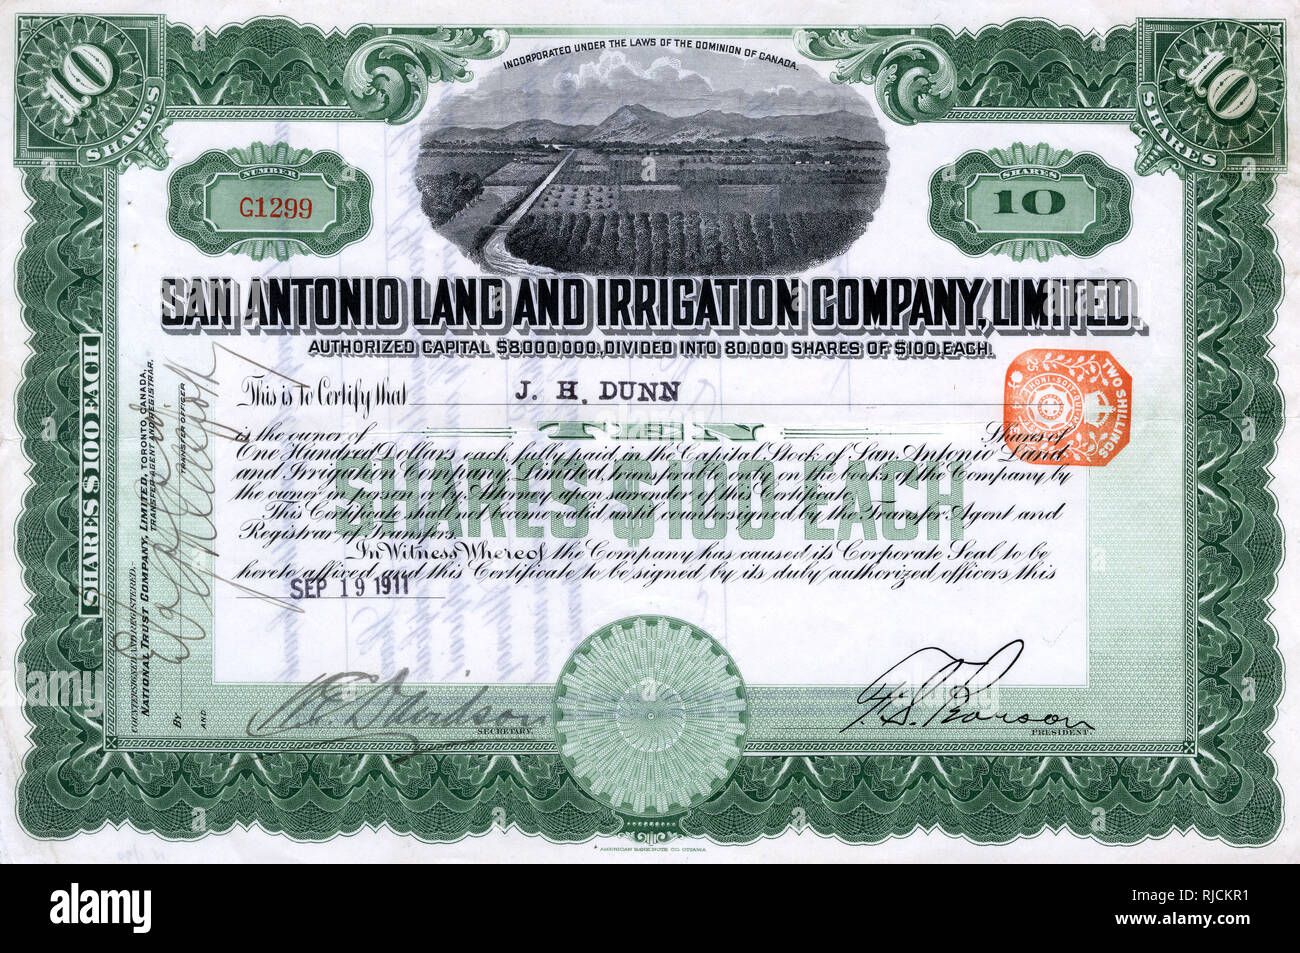 Share certificate, San Antonio Land and Irrigation Company Limited -- 10 shares, dated 19 September 1911, made out to J H Dunn. - Stock Image